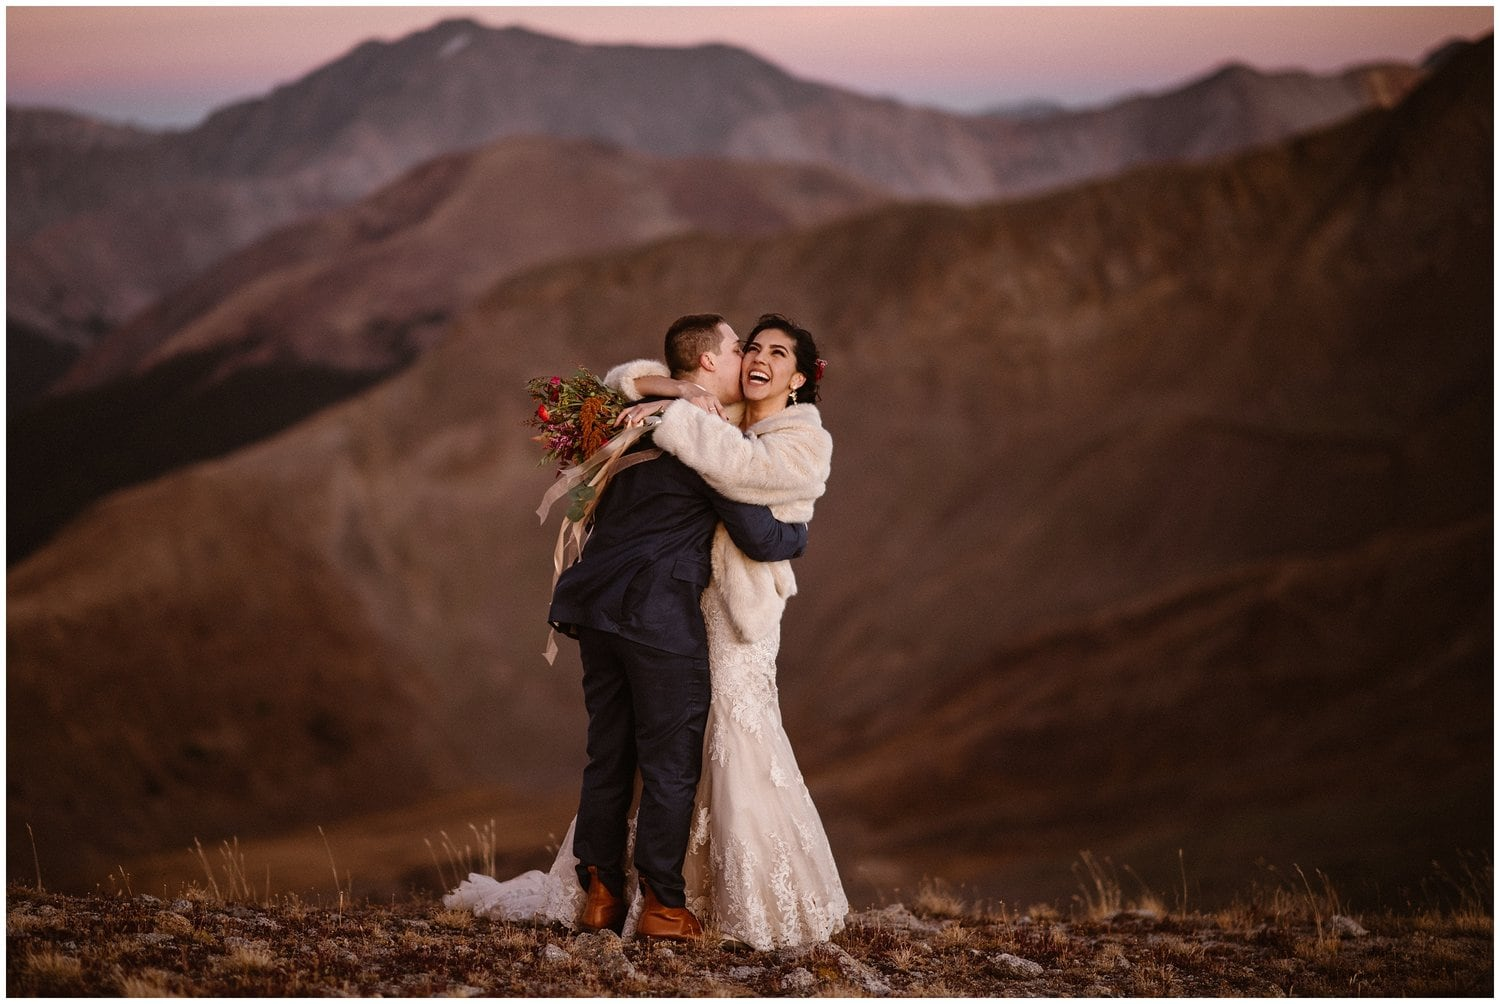 A bride and groom embrace on a mountain top on their elopement day.